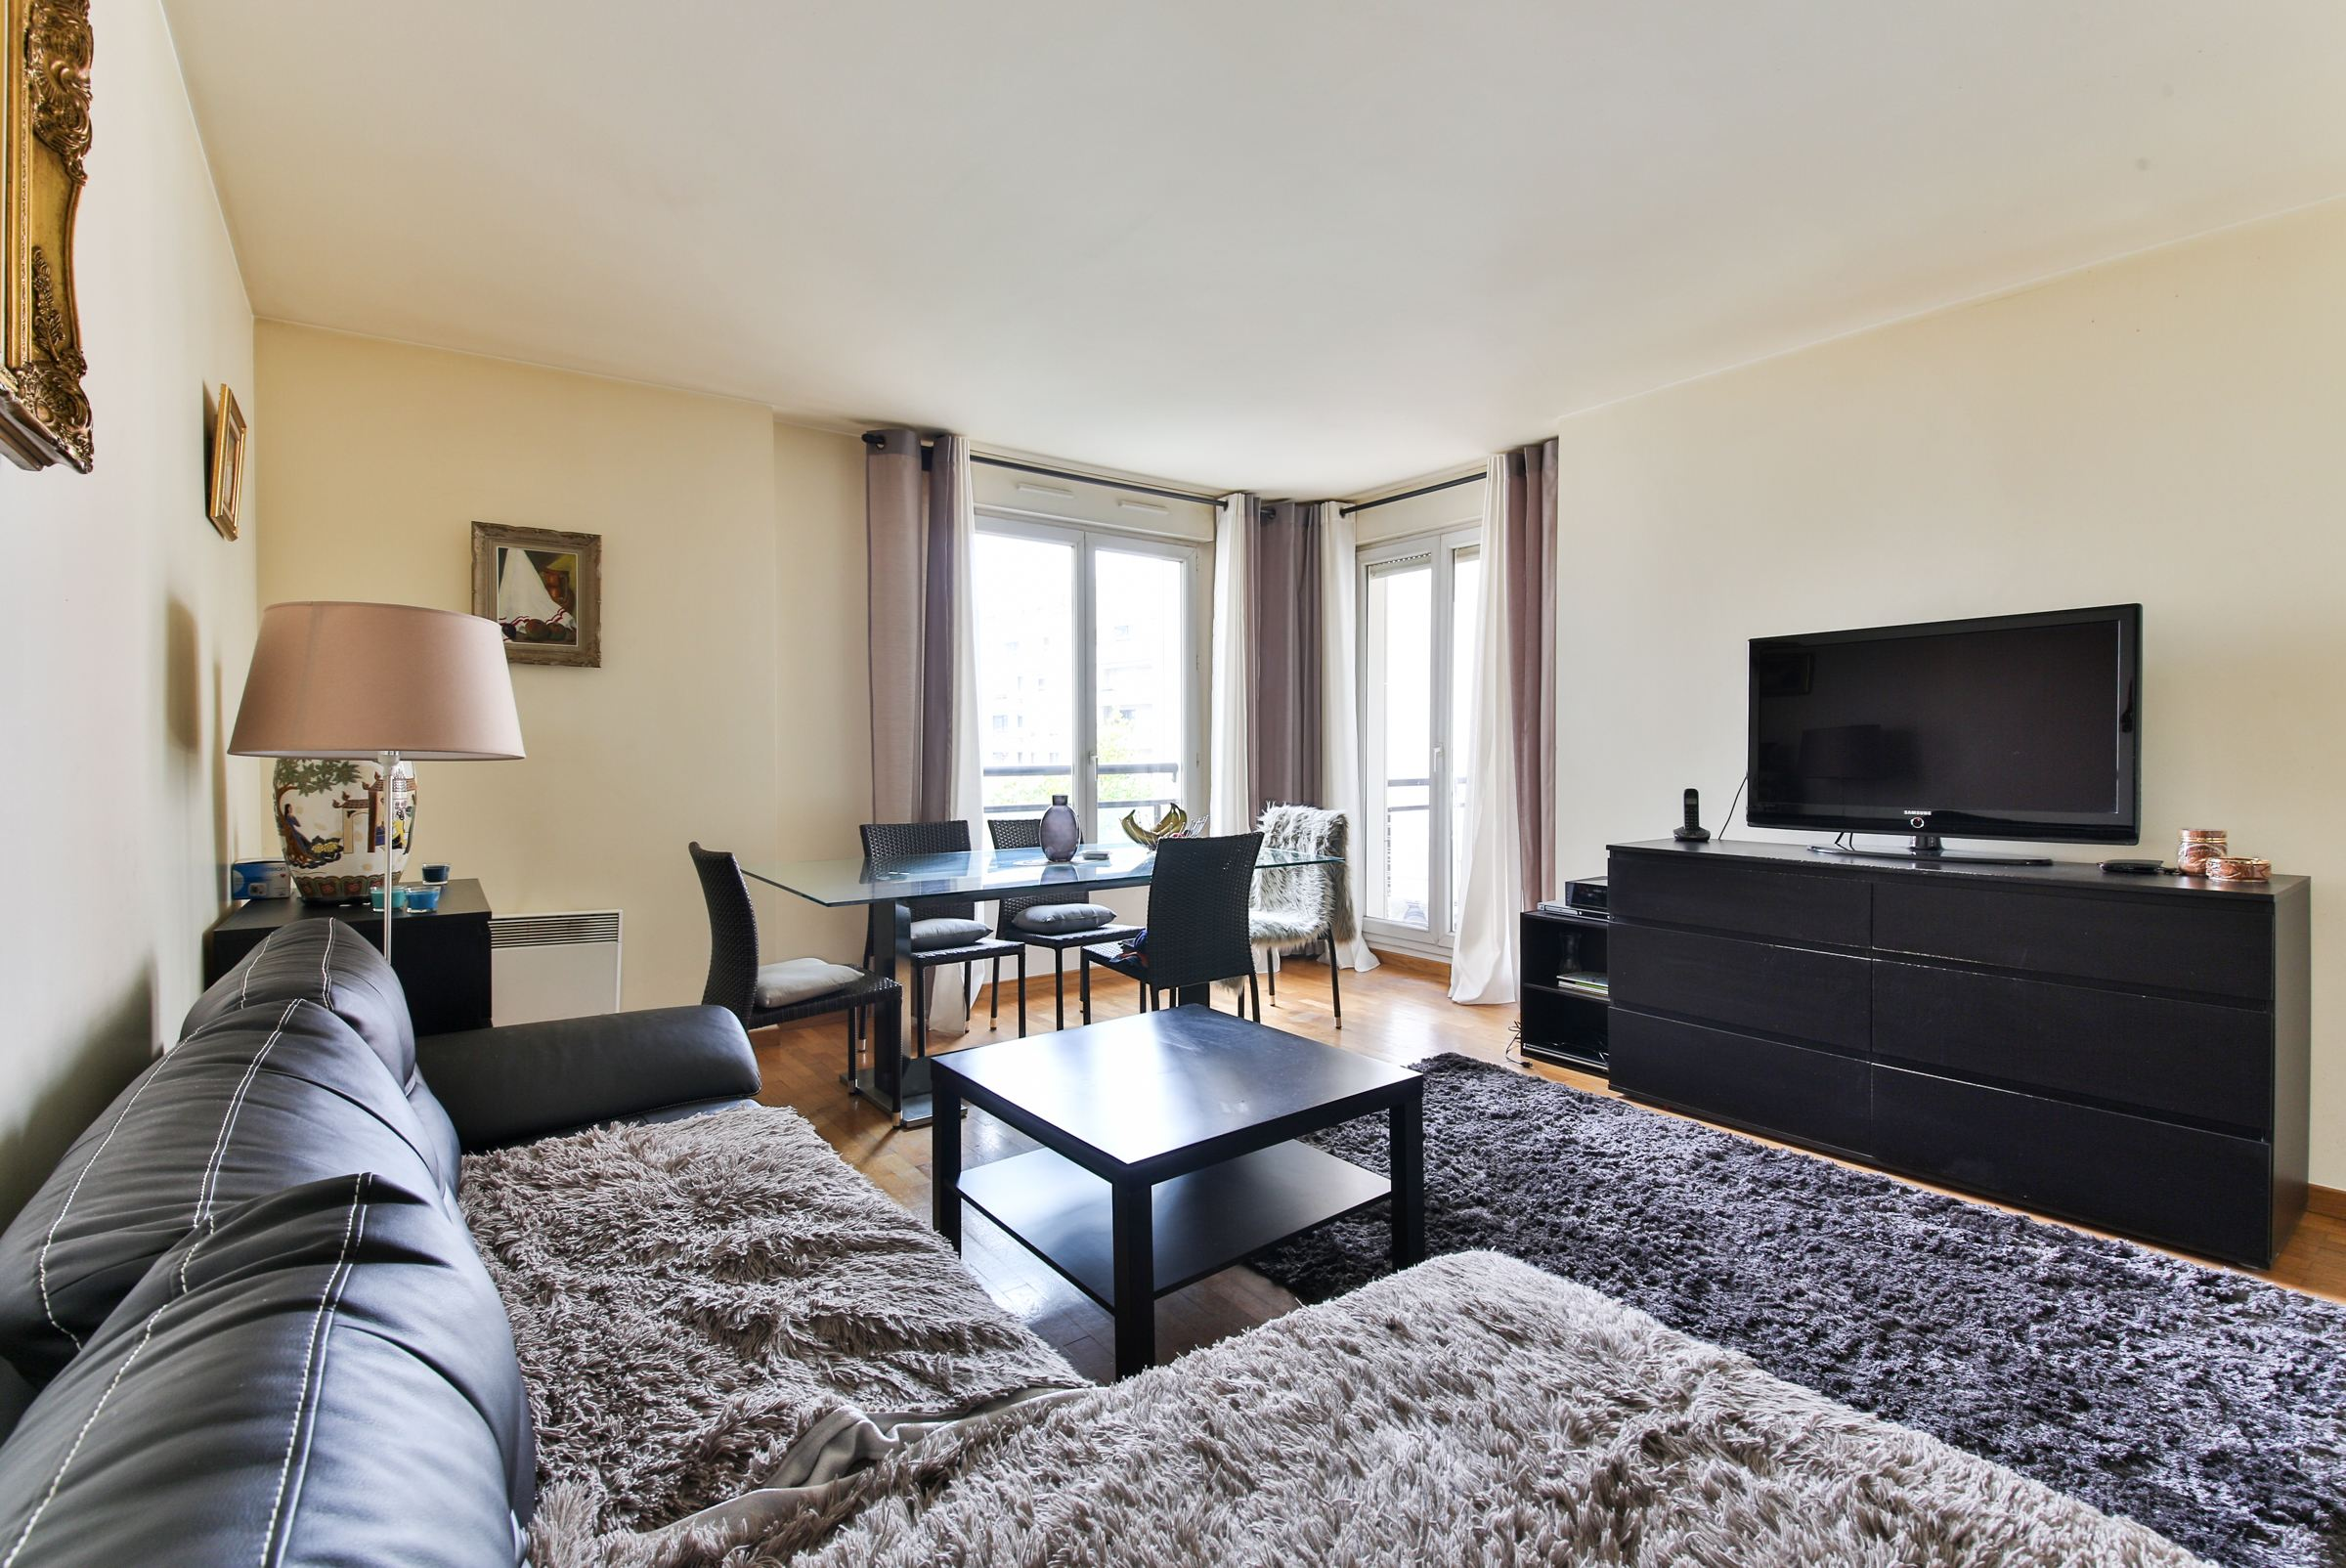 Property For Sale at Levallois. A 2 rooms apartment in good condition + small terrace